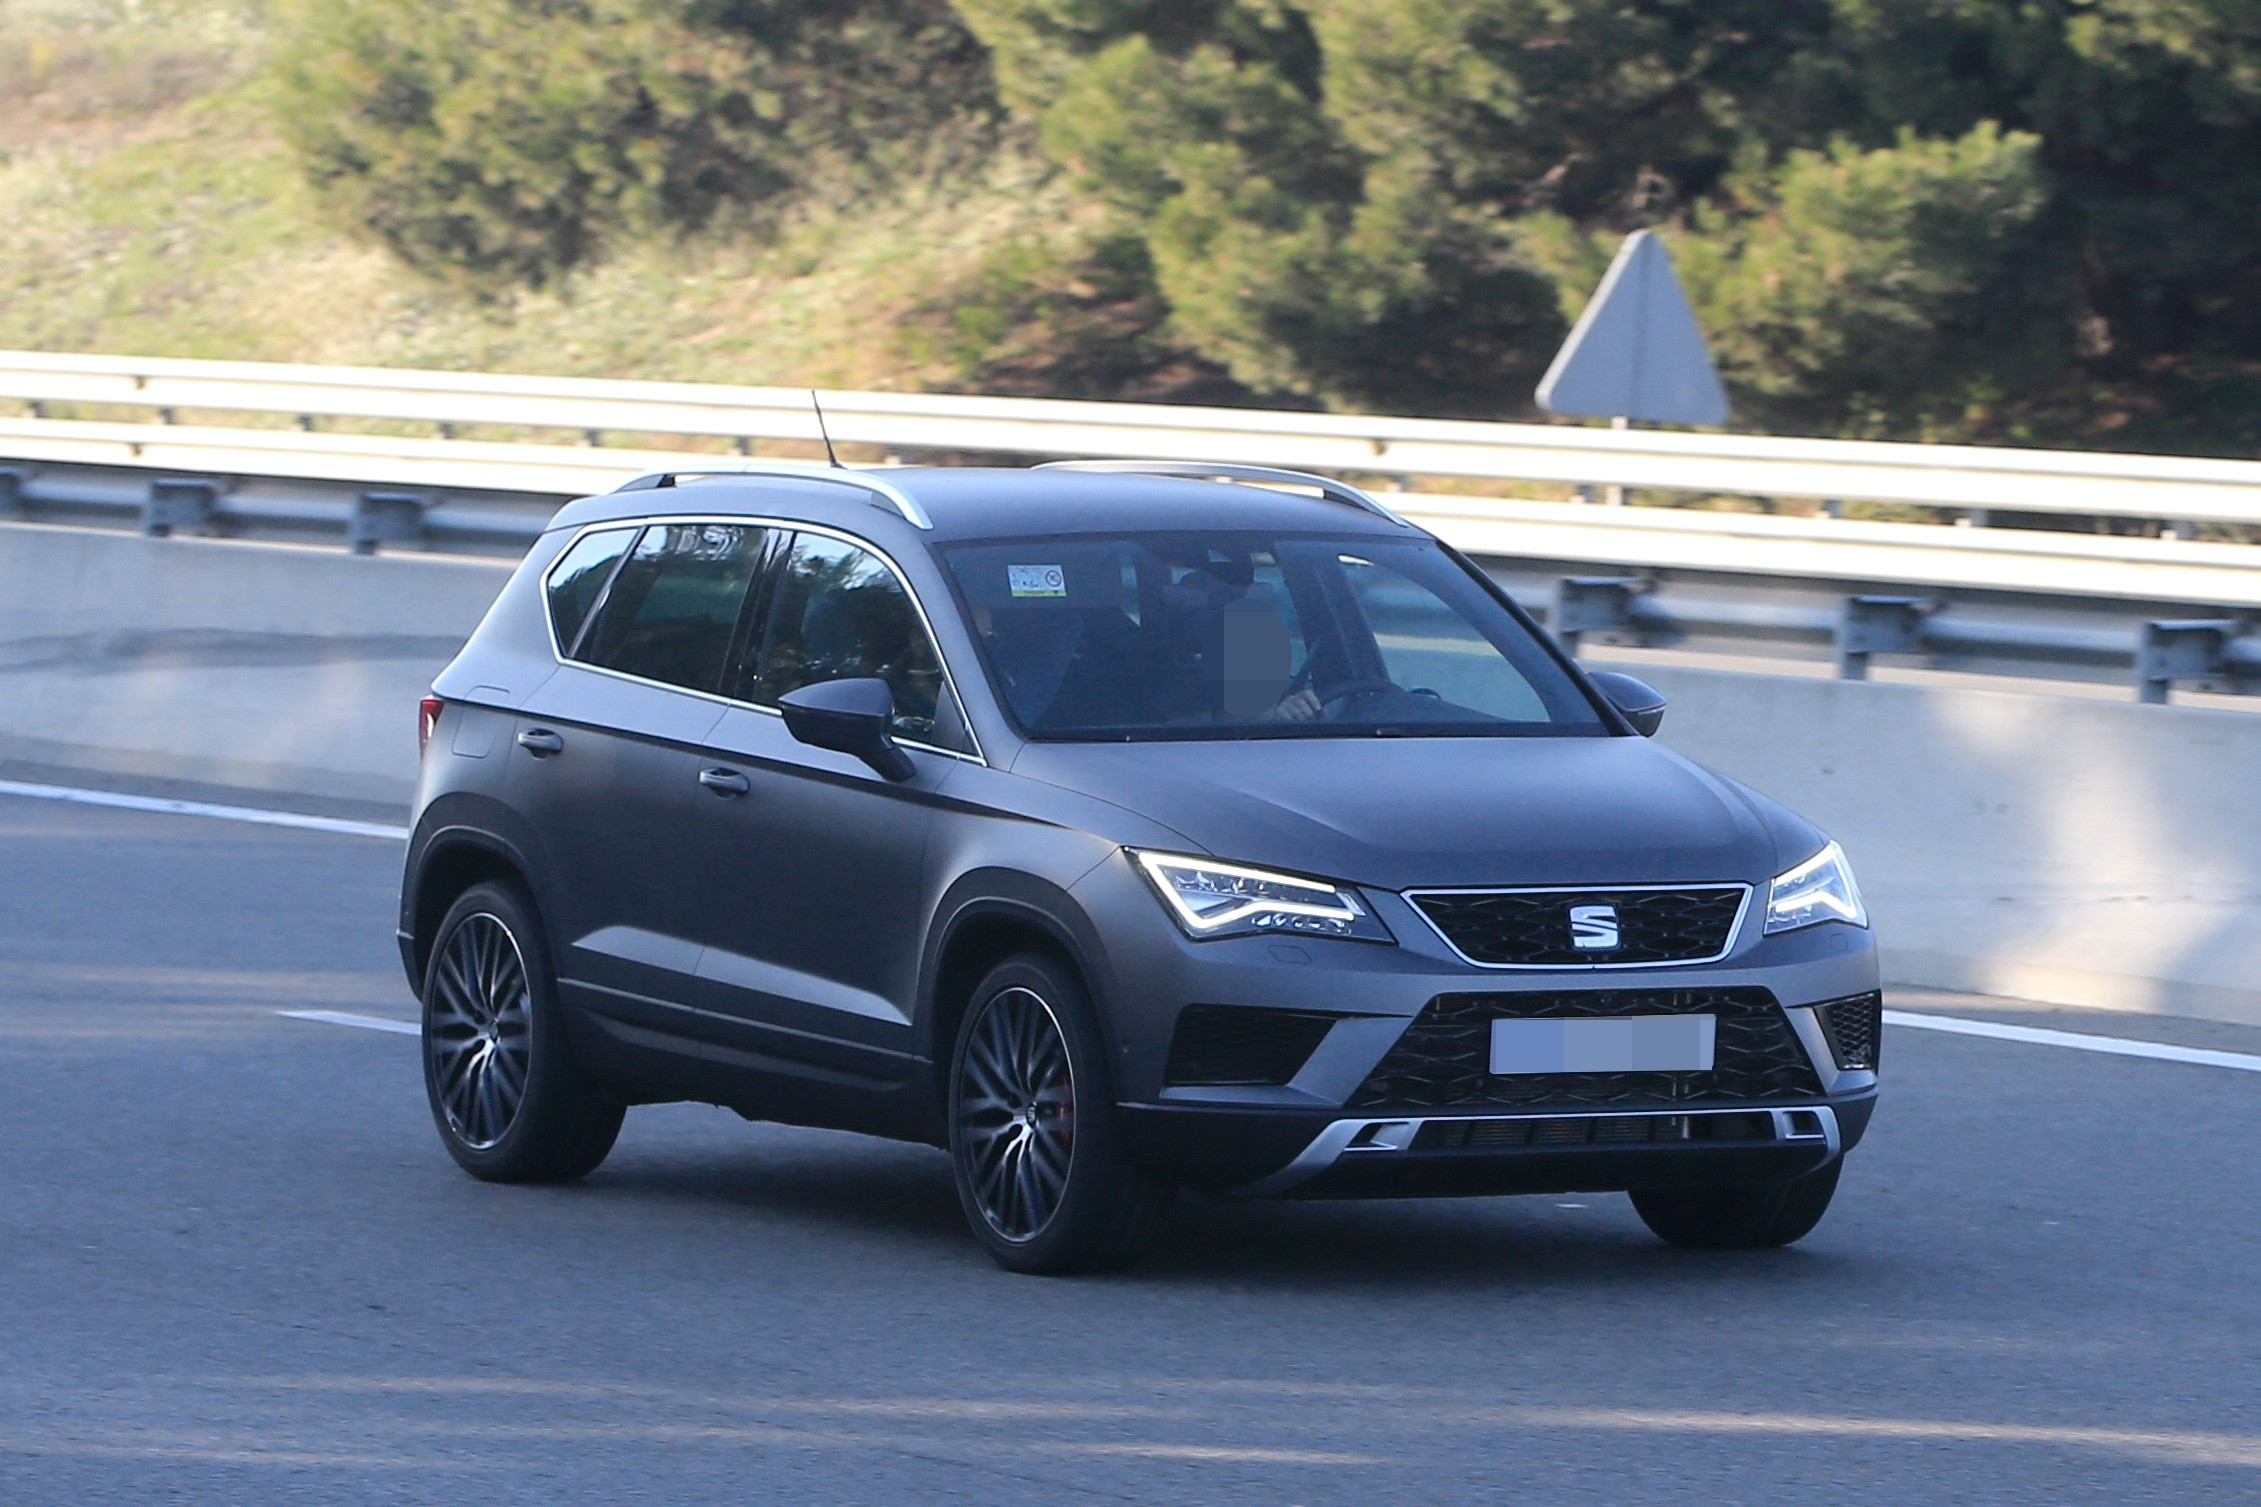 2016 - [Seat] Ateca - Page 21 Seat-ateca-cupra-spied-in-full-view-while-testing-in-spain_2